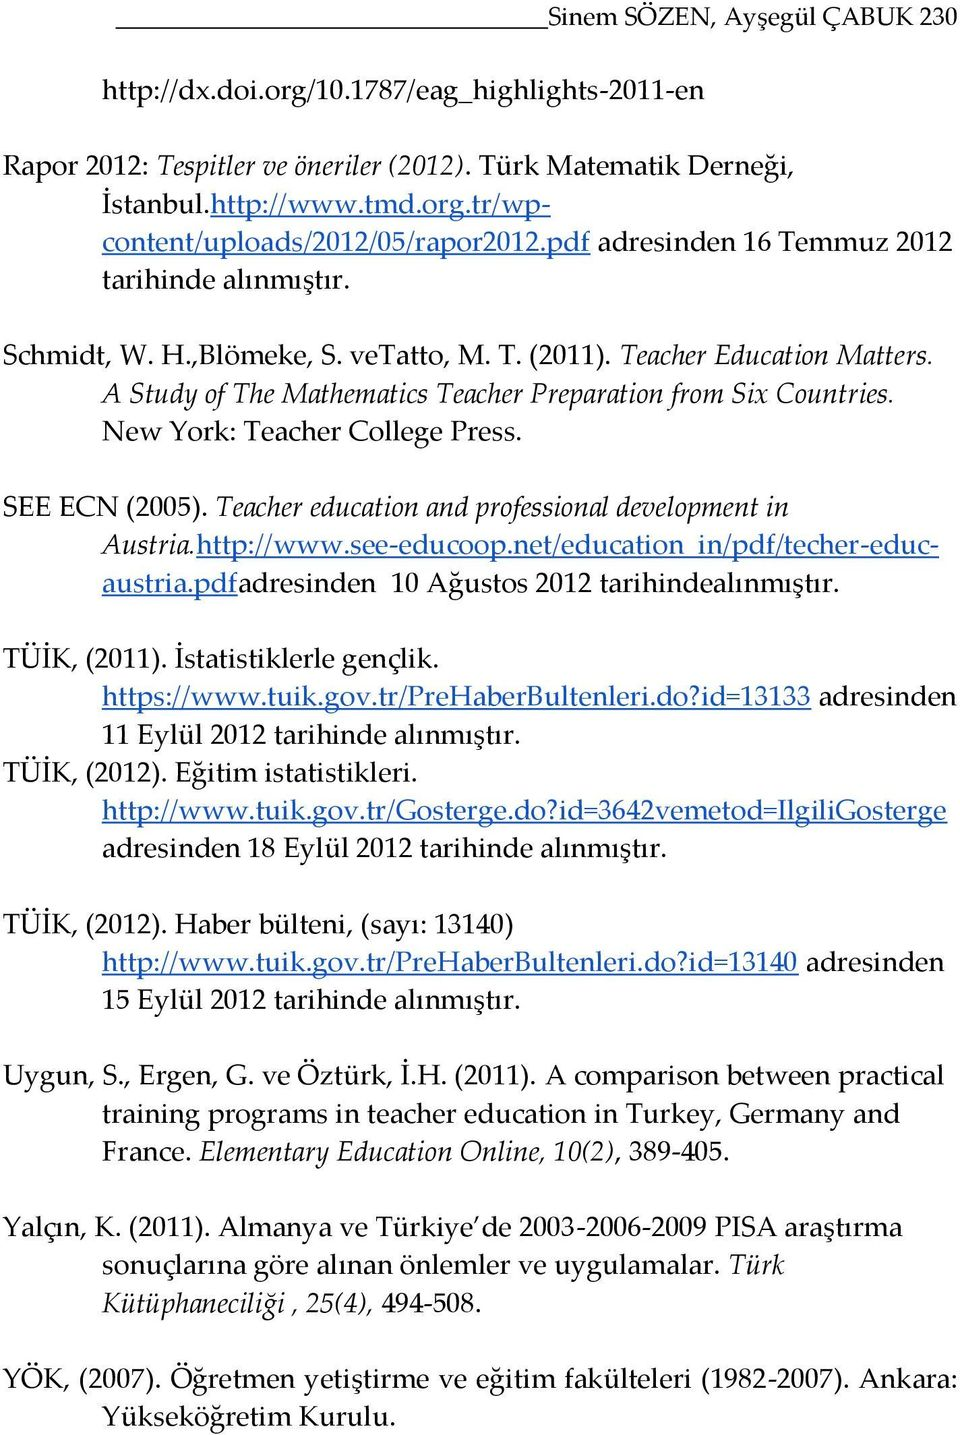 New York: Teacher College Press. SEE ECN (2005). Teacher education and professional development in Austria.http://www.see-educoop.net/education_in/pdf/techer-educaustria.